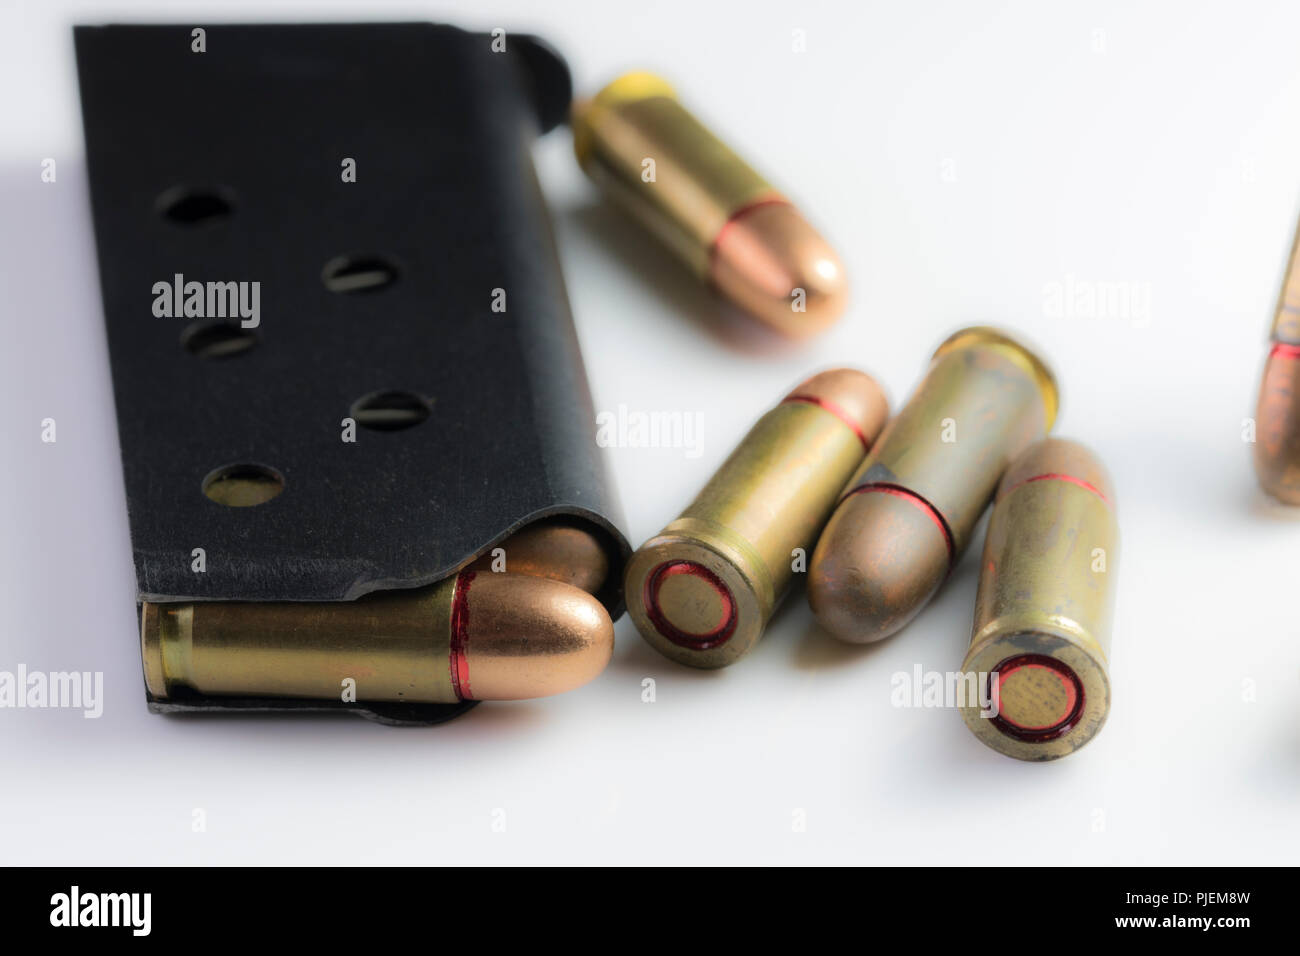 Close up of 22mm caliber bullets in a black gun clip isolated on white. - Stock Image